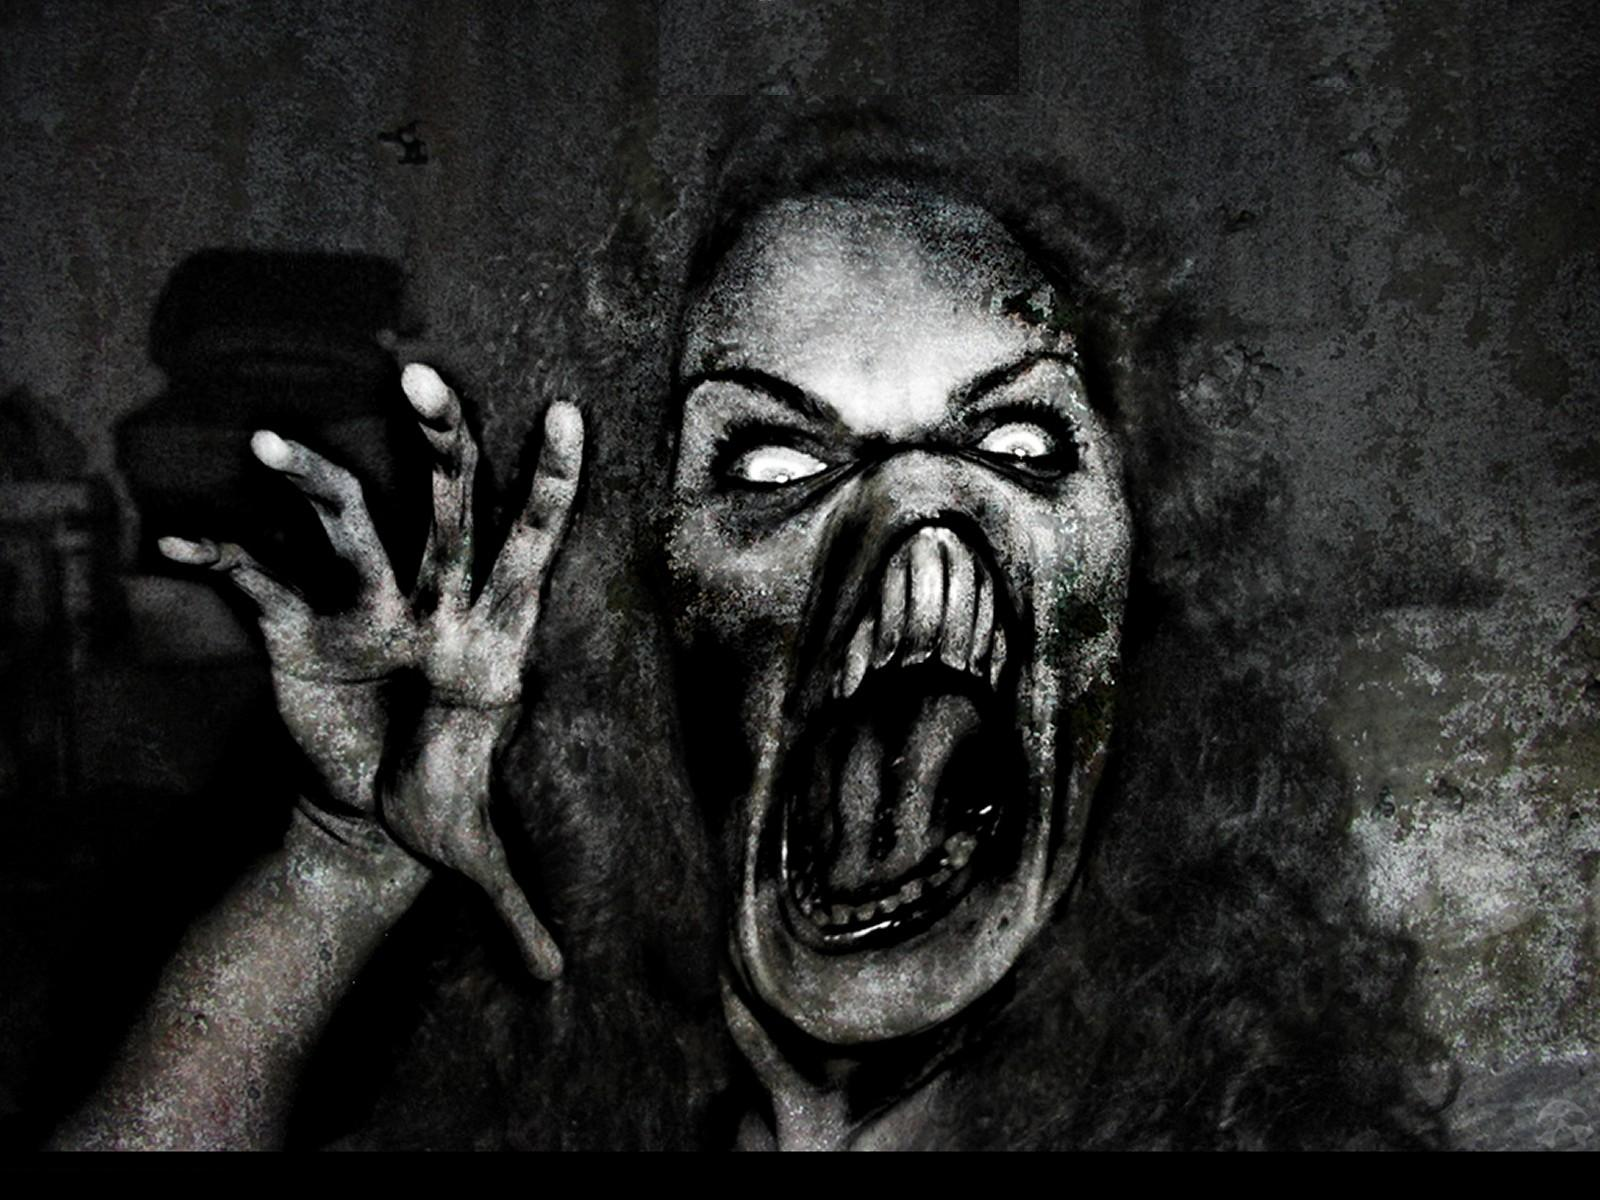 Scary Animated Wallpaper